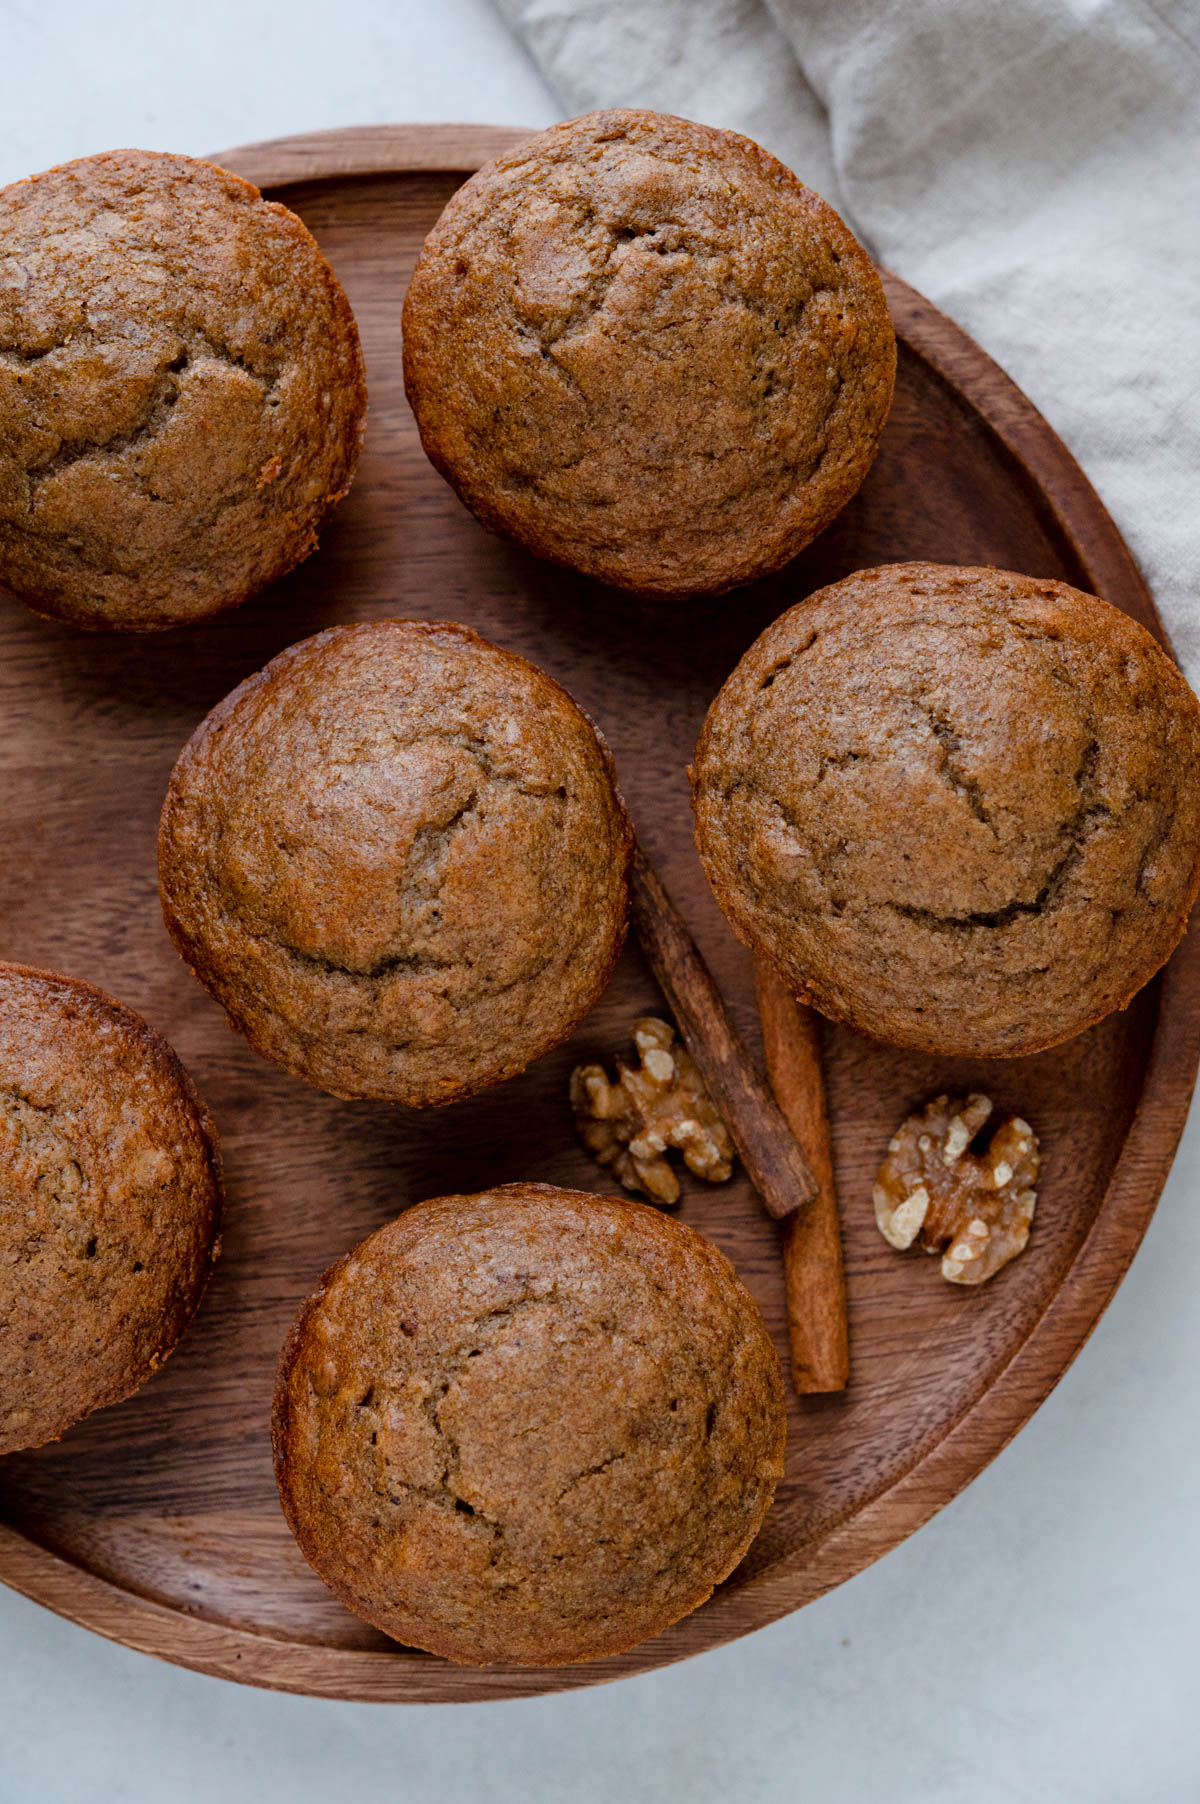 a wooden cake platter filled with apple walnut muffins.